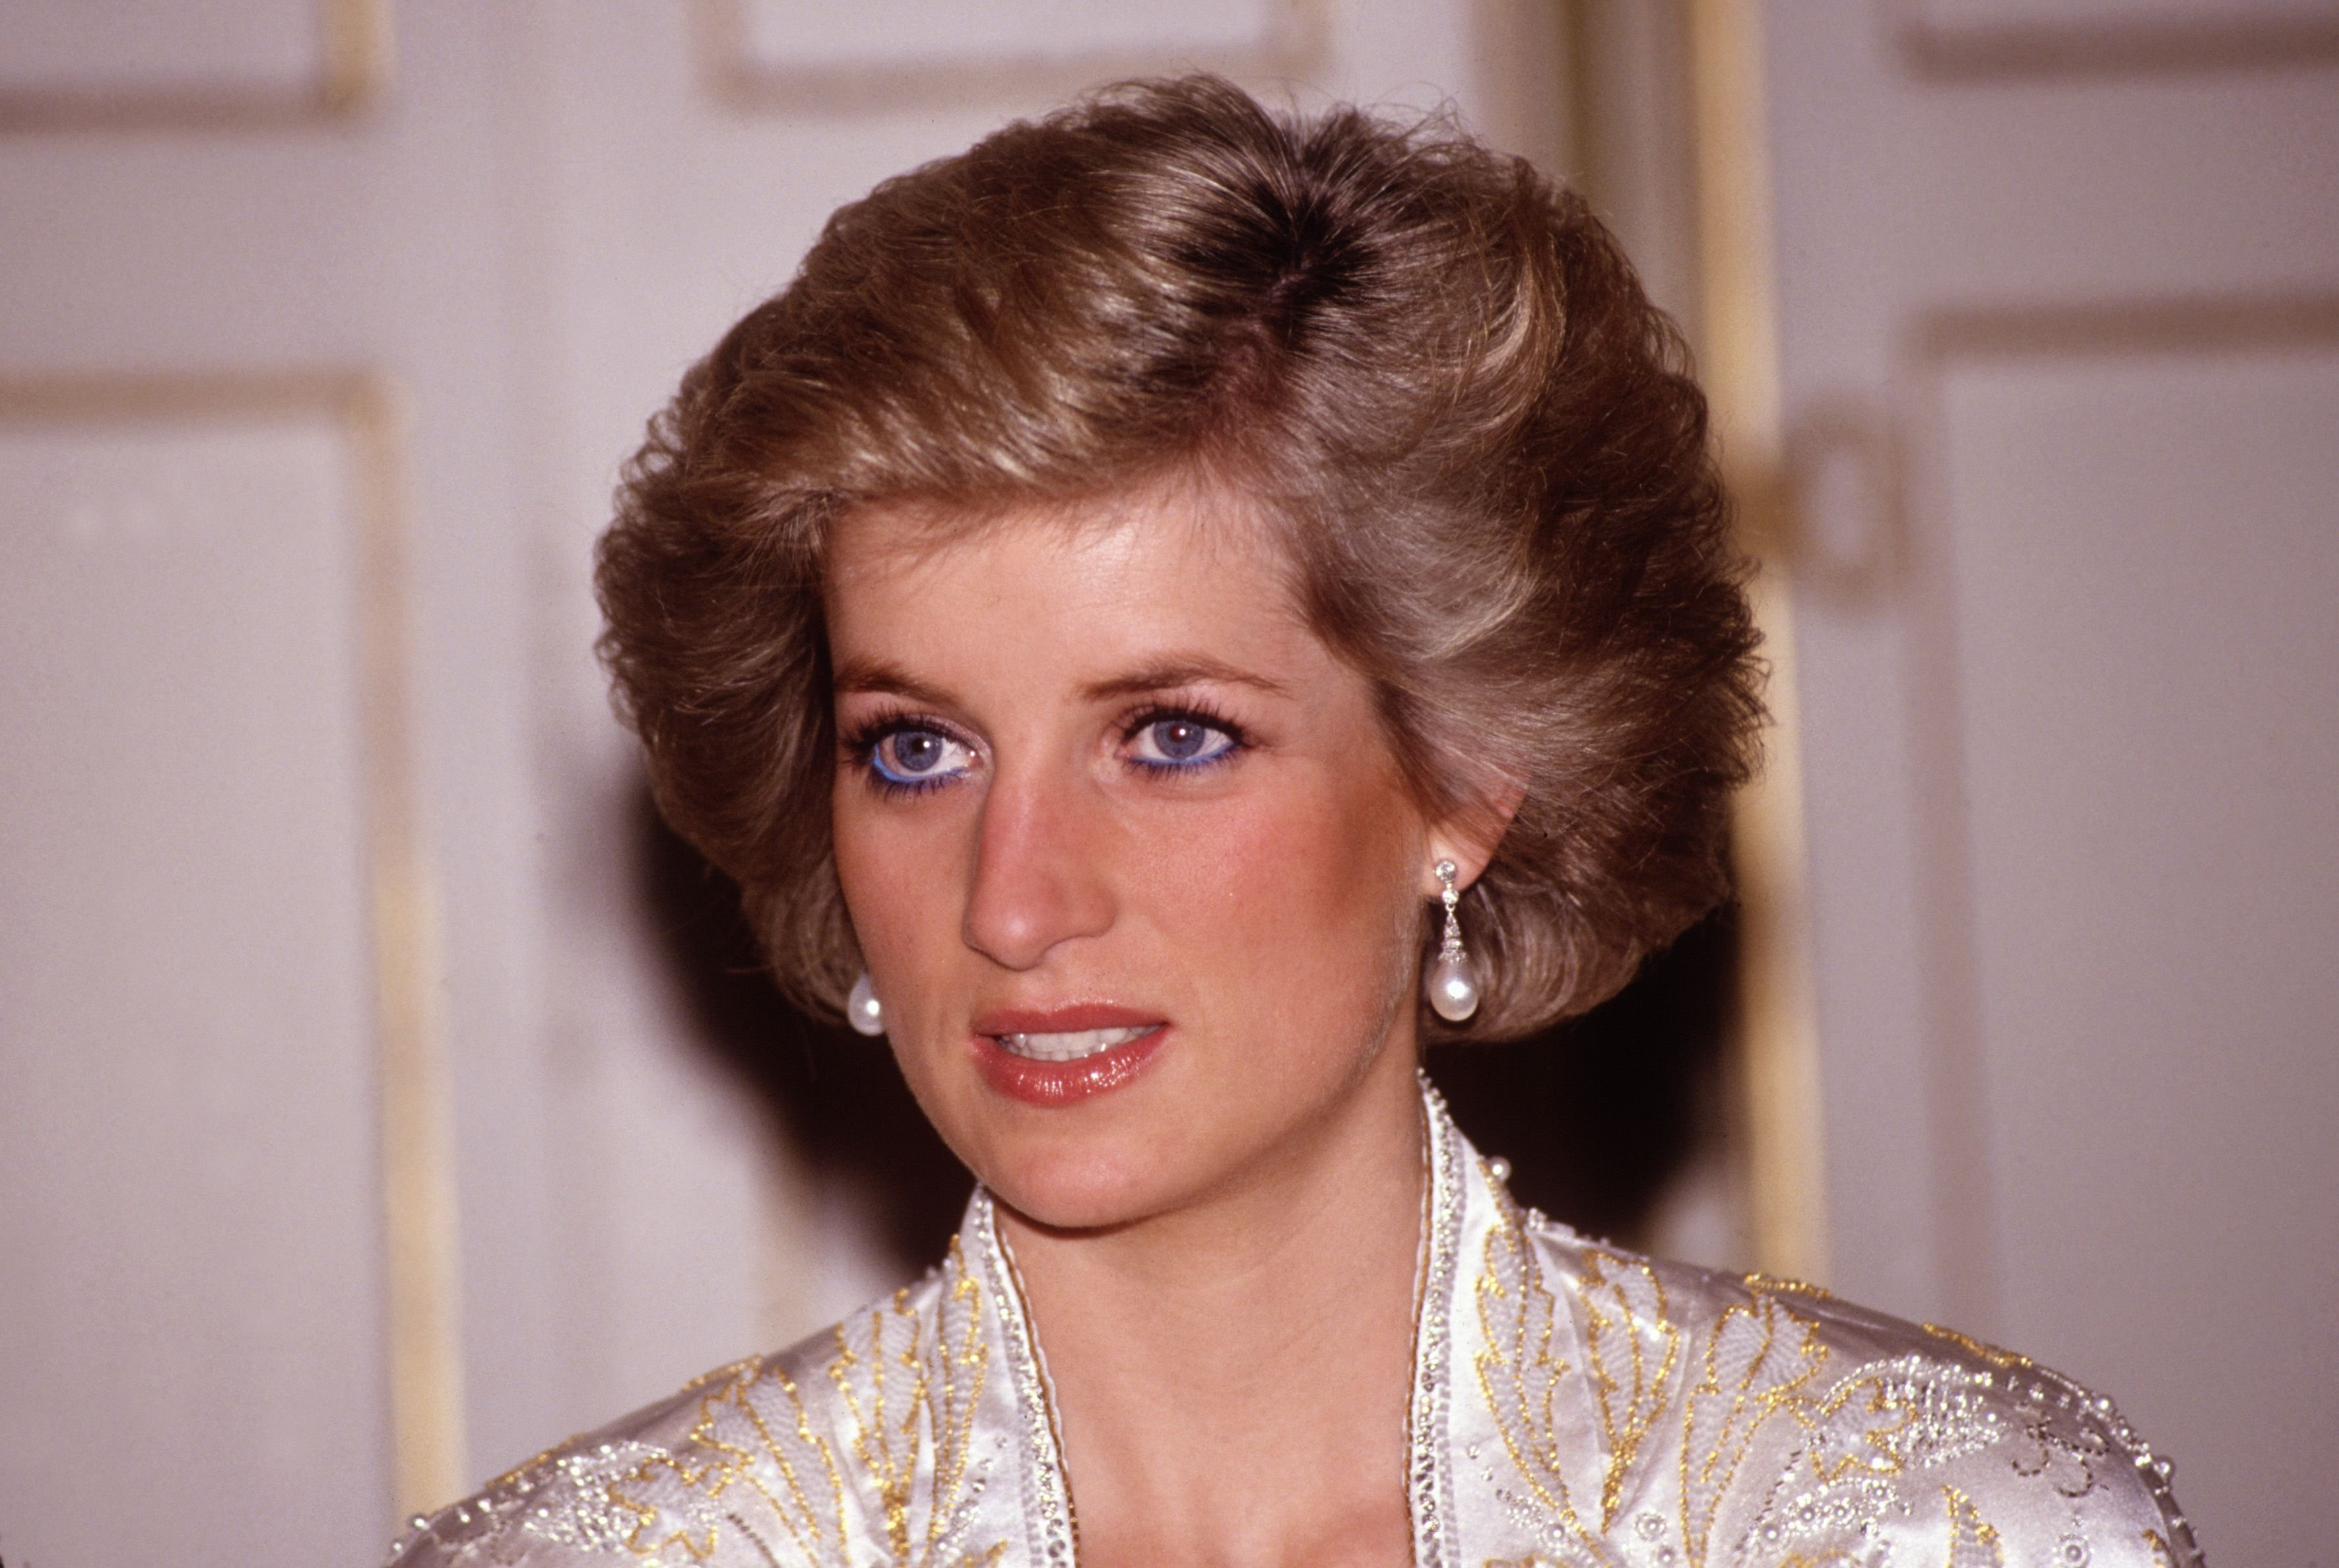 Princess Diana during a dinner given by President Mitterand on November 1, 1988 | Photo: Getty images